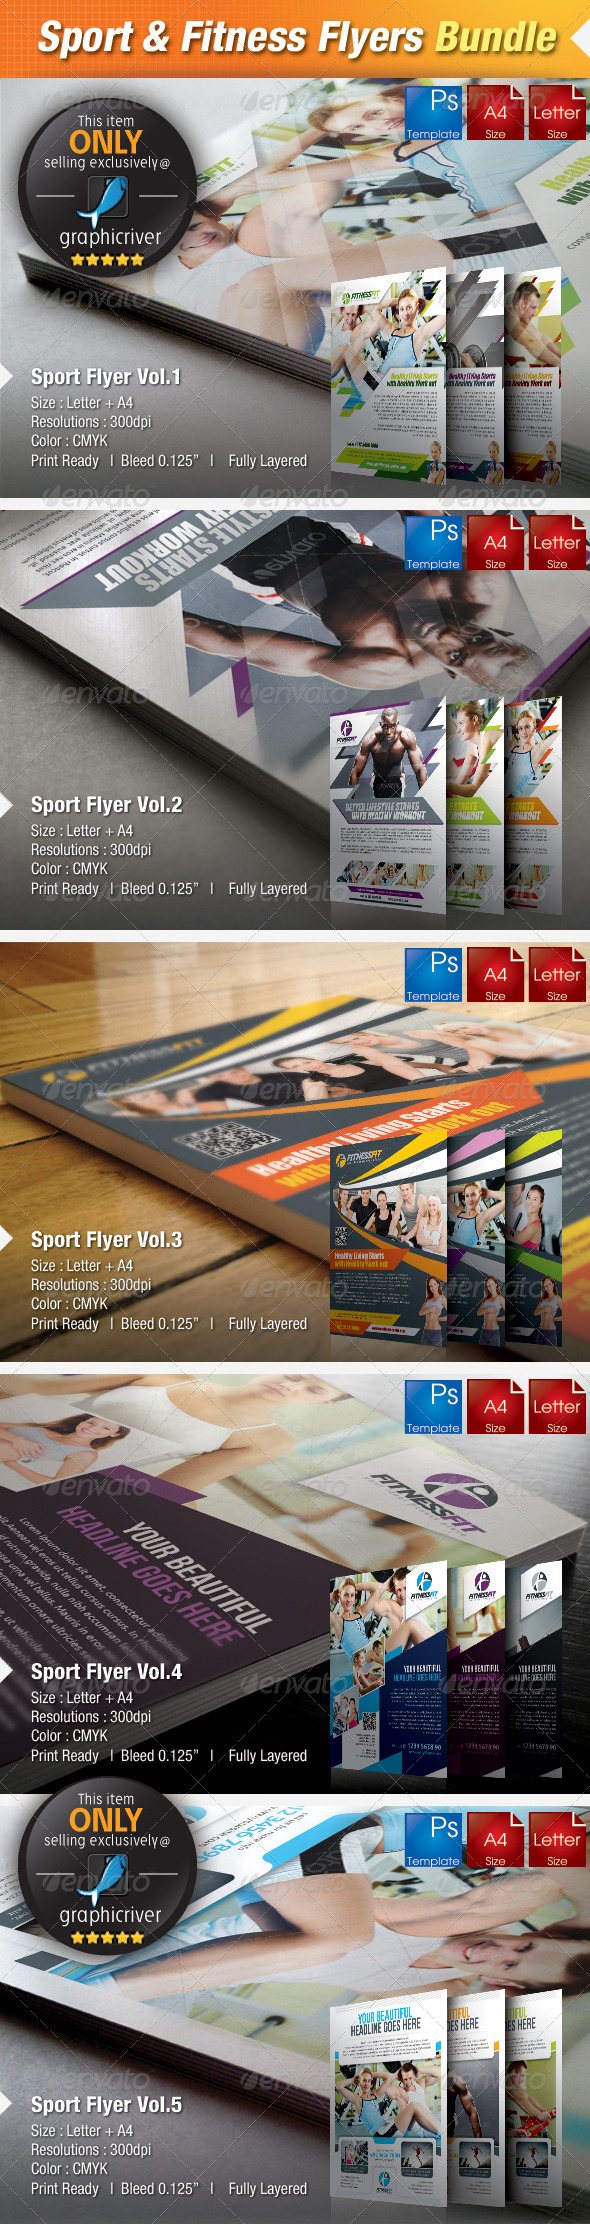 5-in-1 Sport & Fitness Flyers Bundle - Sports Events